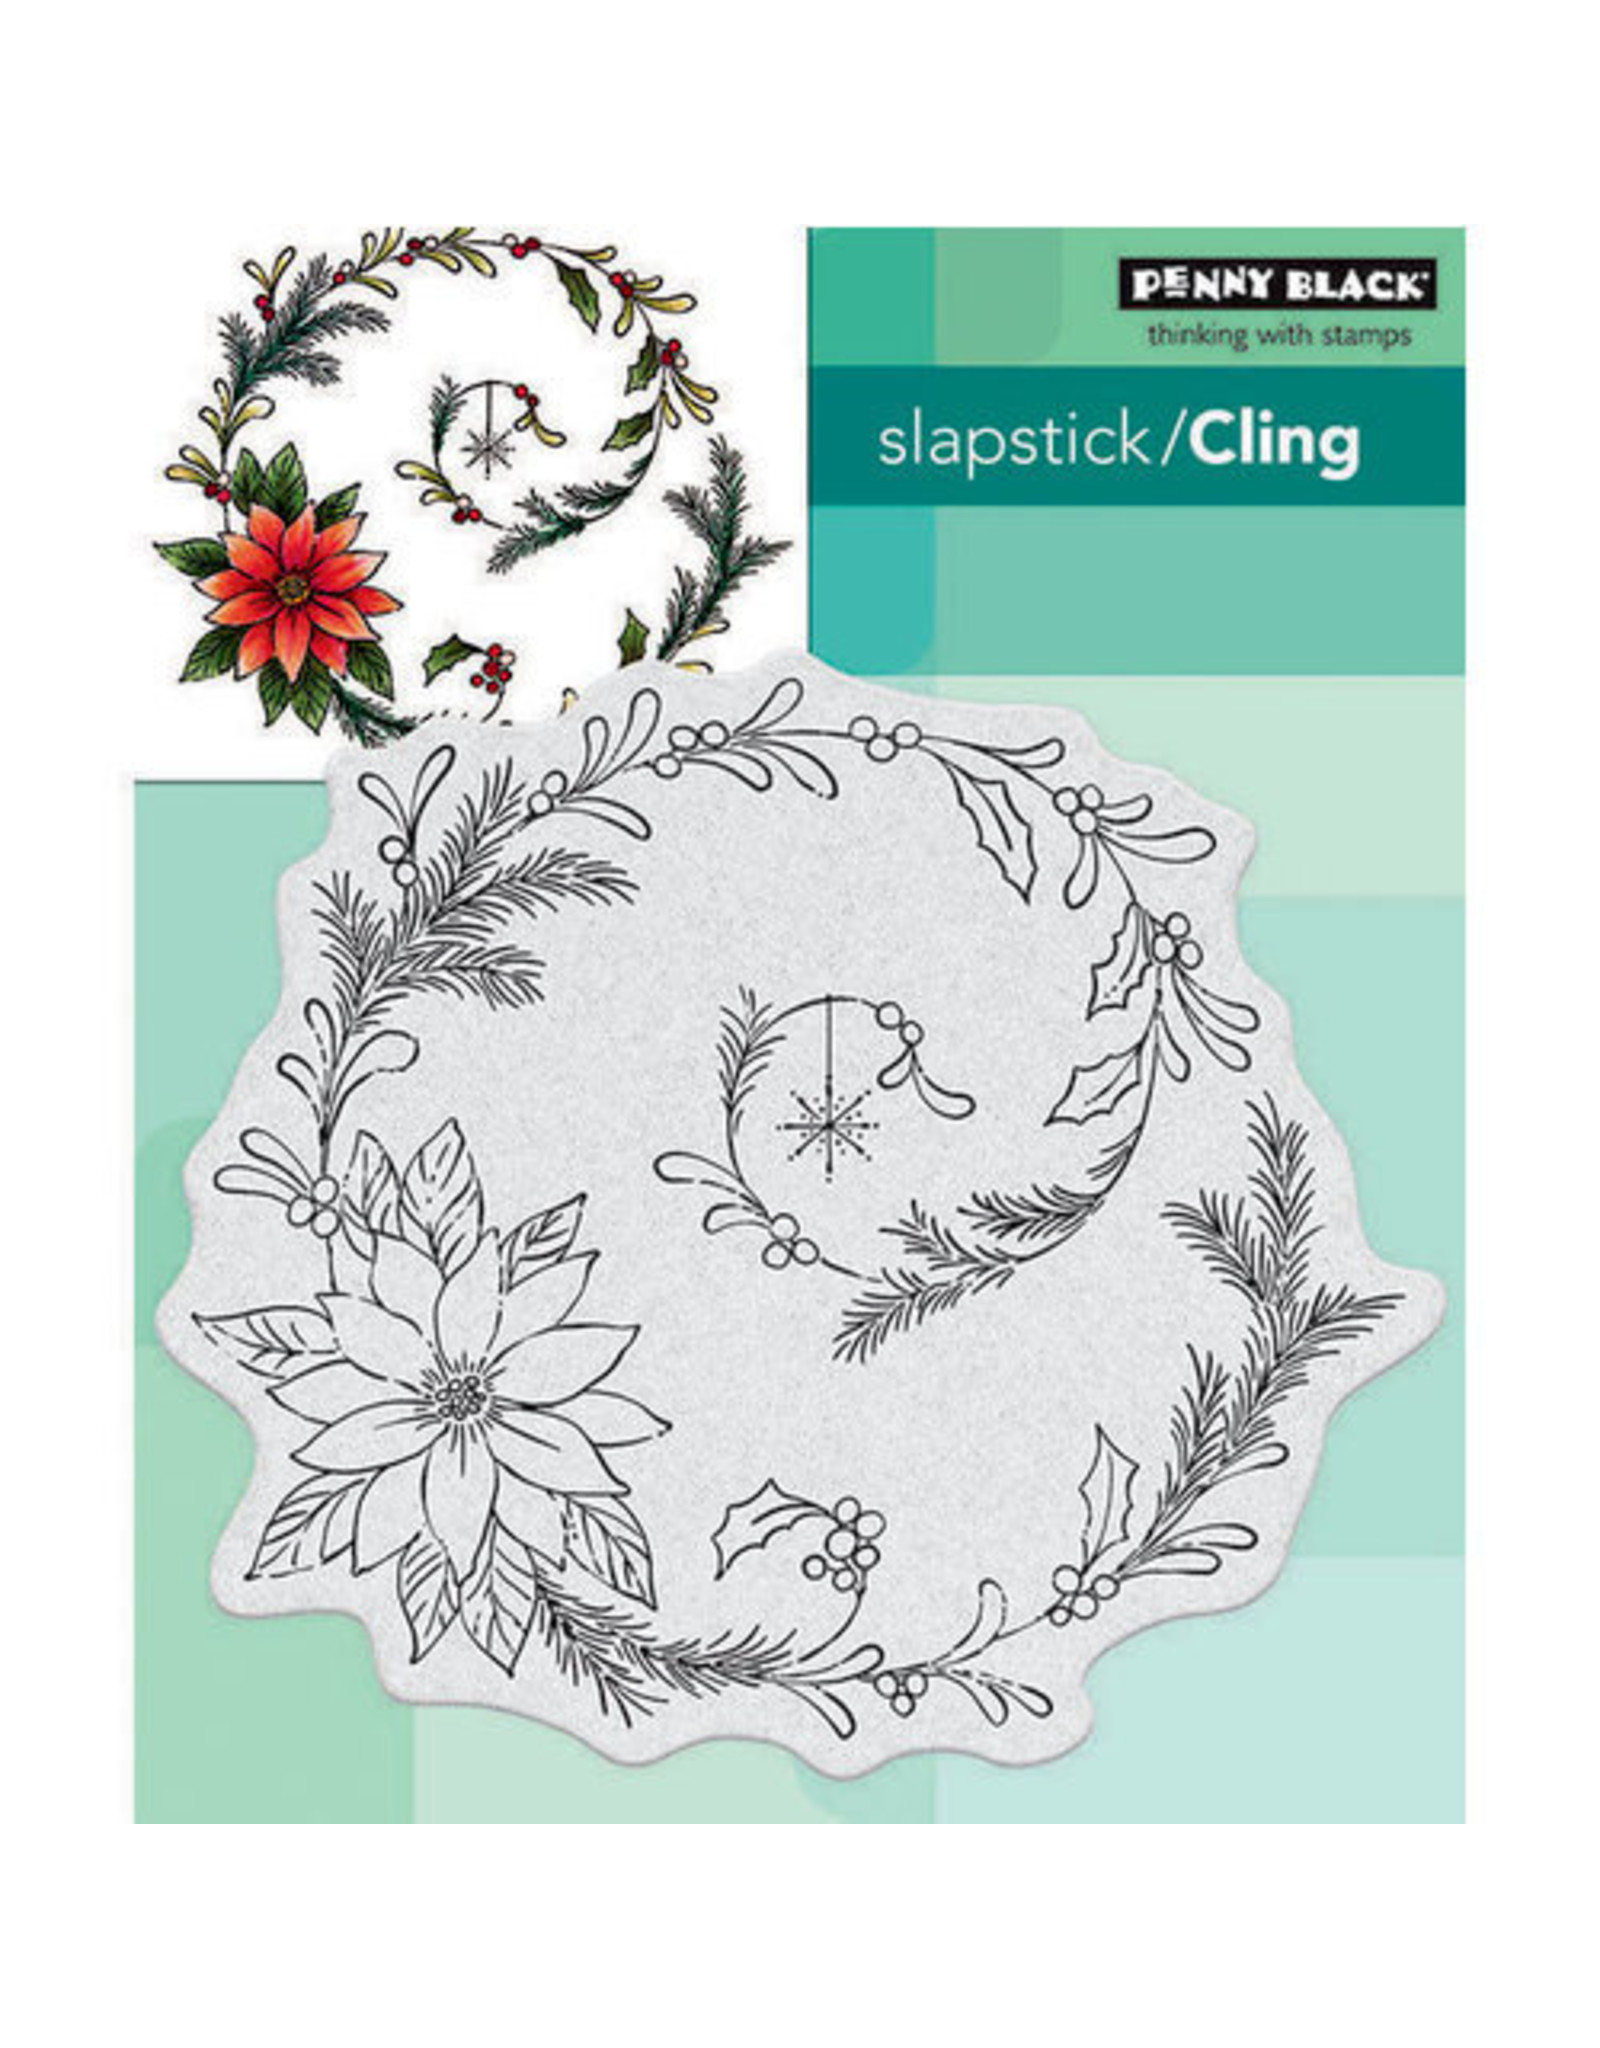 Penny Black Poinsettia Spiral - Cling Stamp